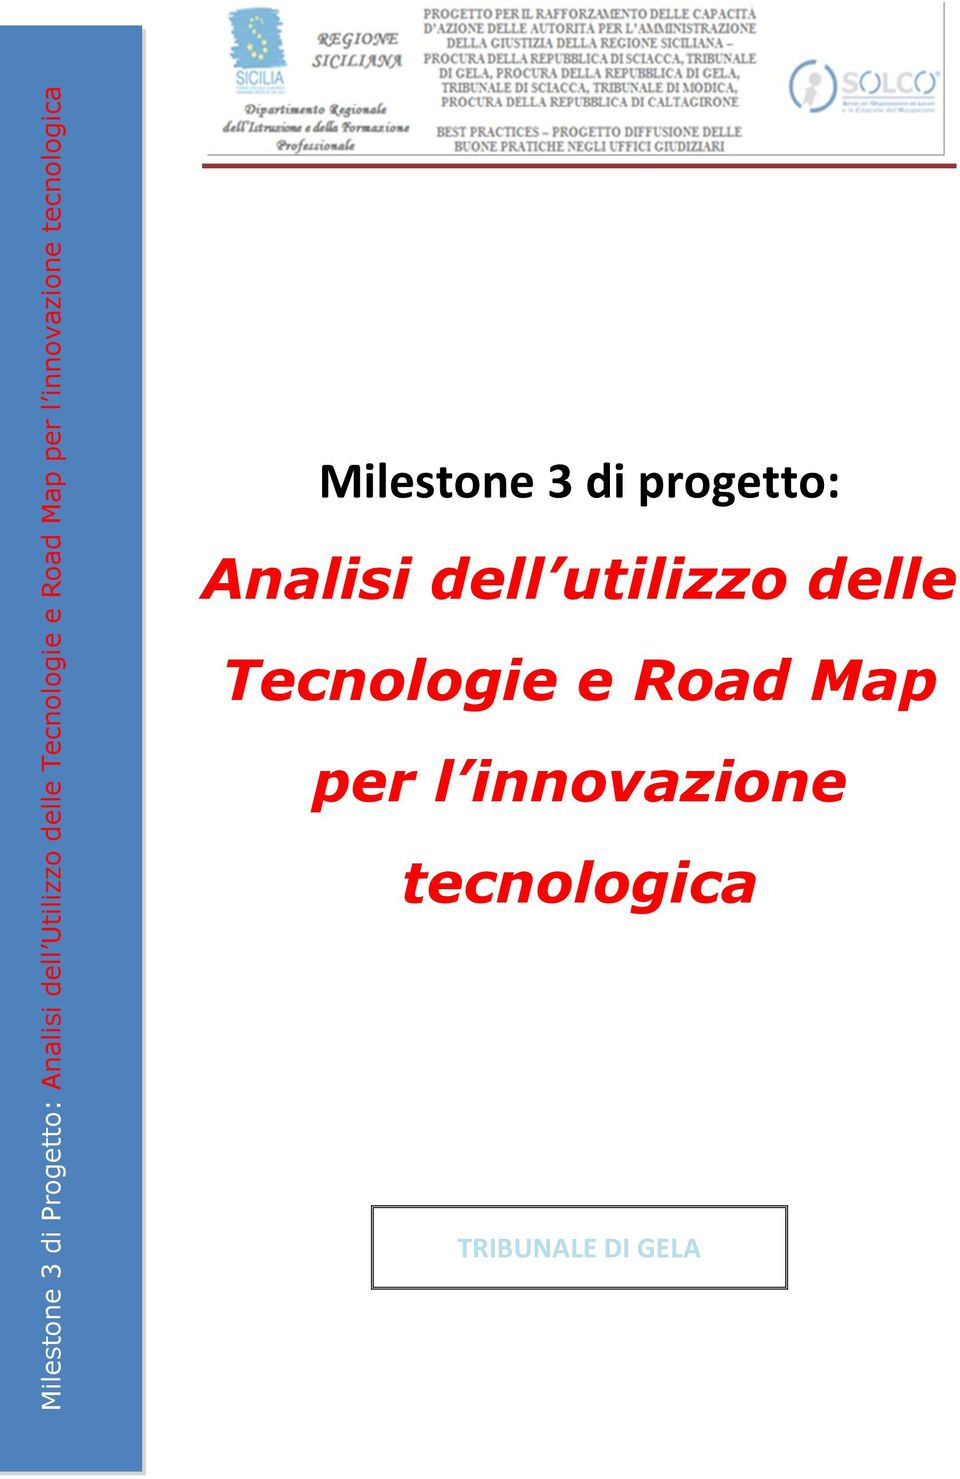 Tecnologie e Road Map per l